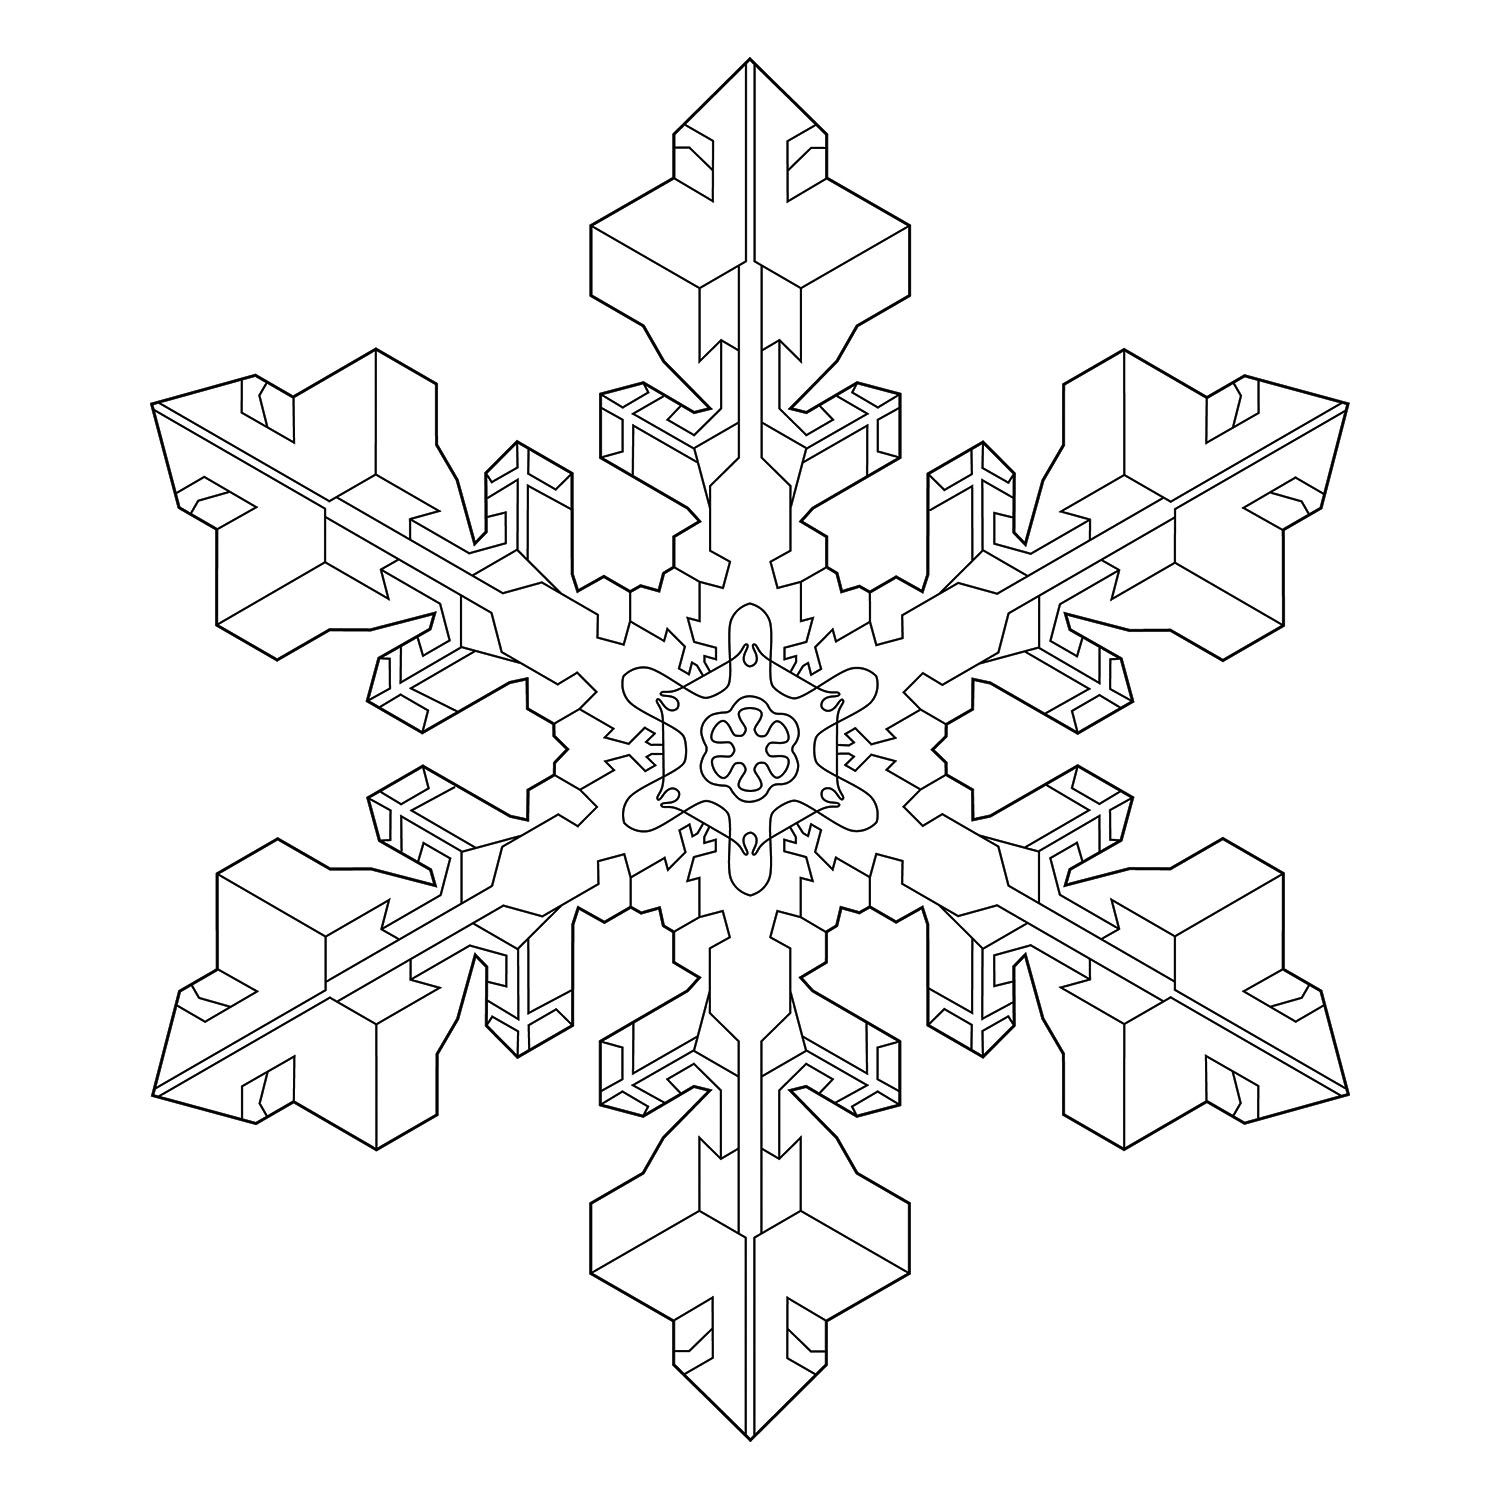 A Beautiful Snowflake For Coloring Based On A Real